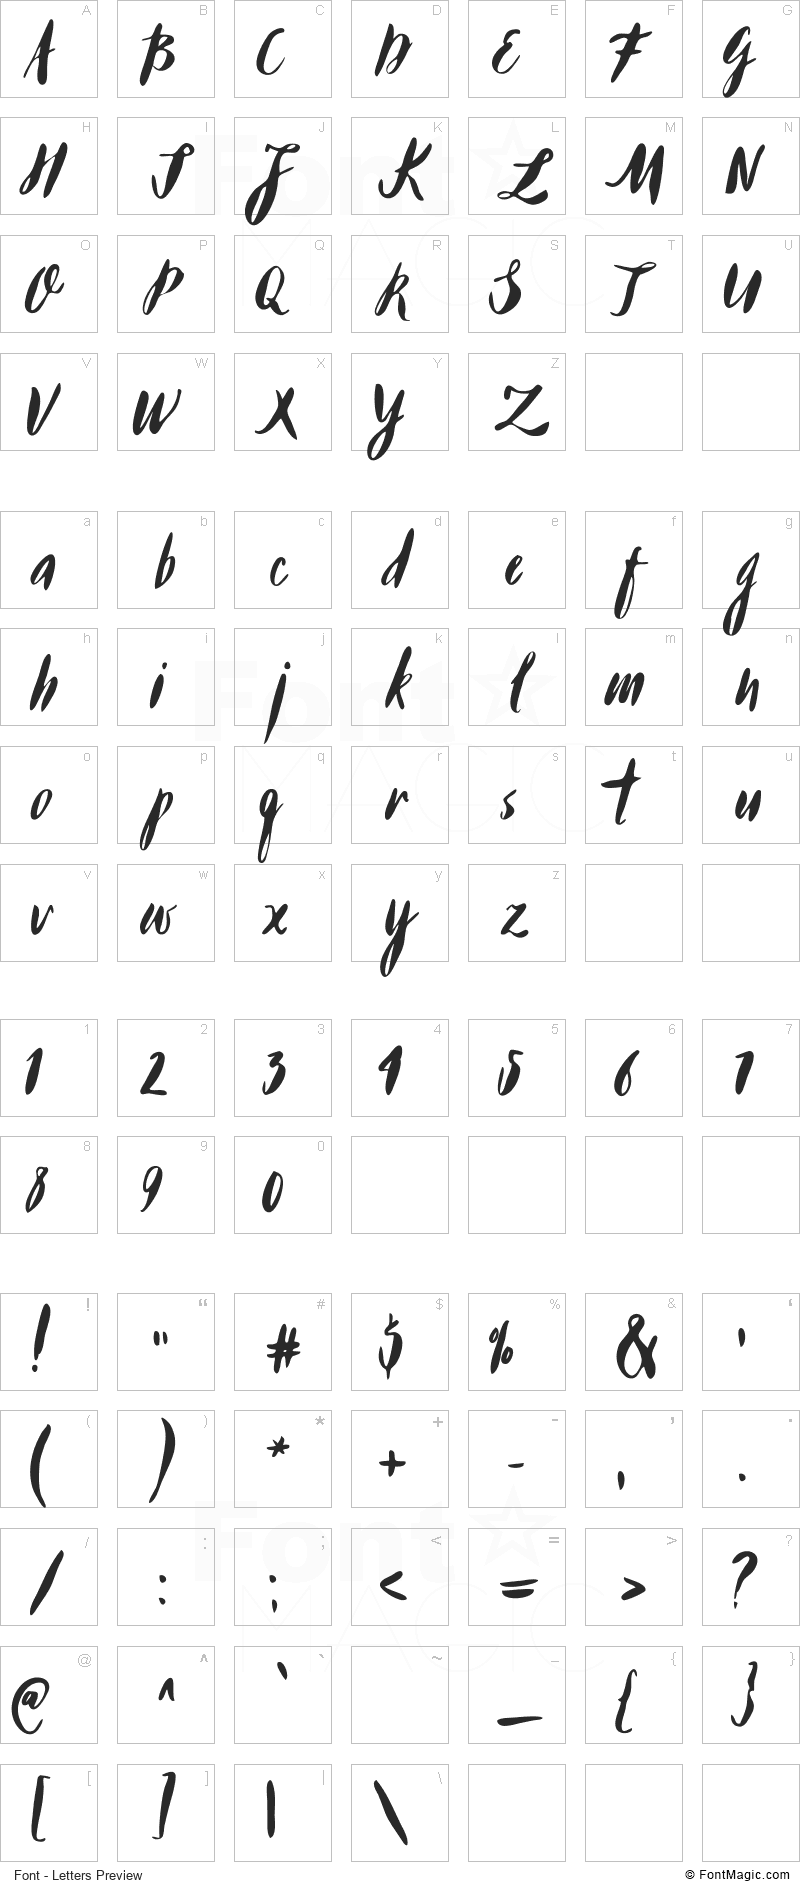 Buffy Font - All Latters Preview Chart